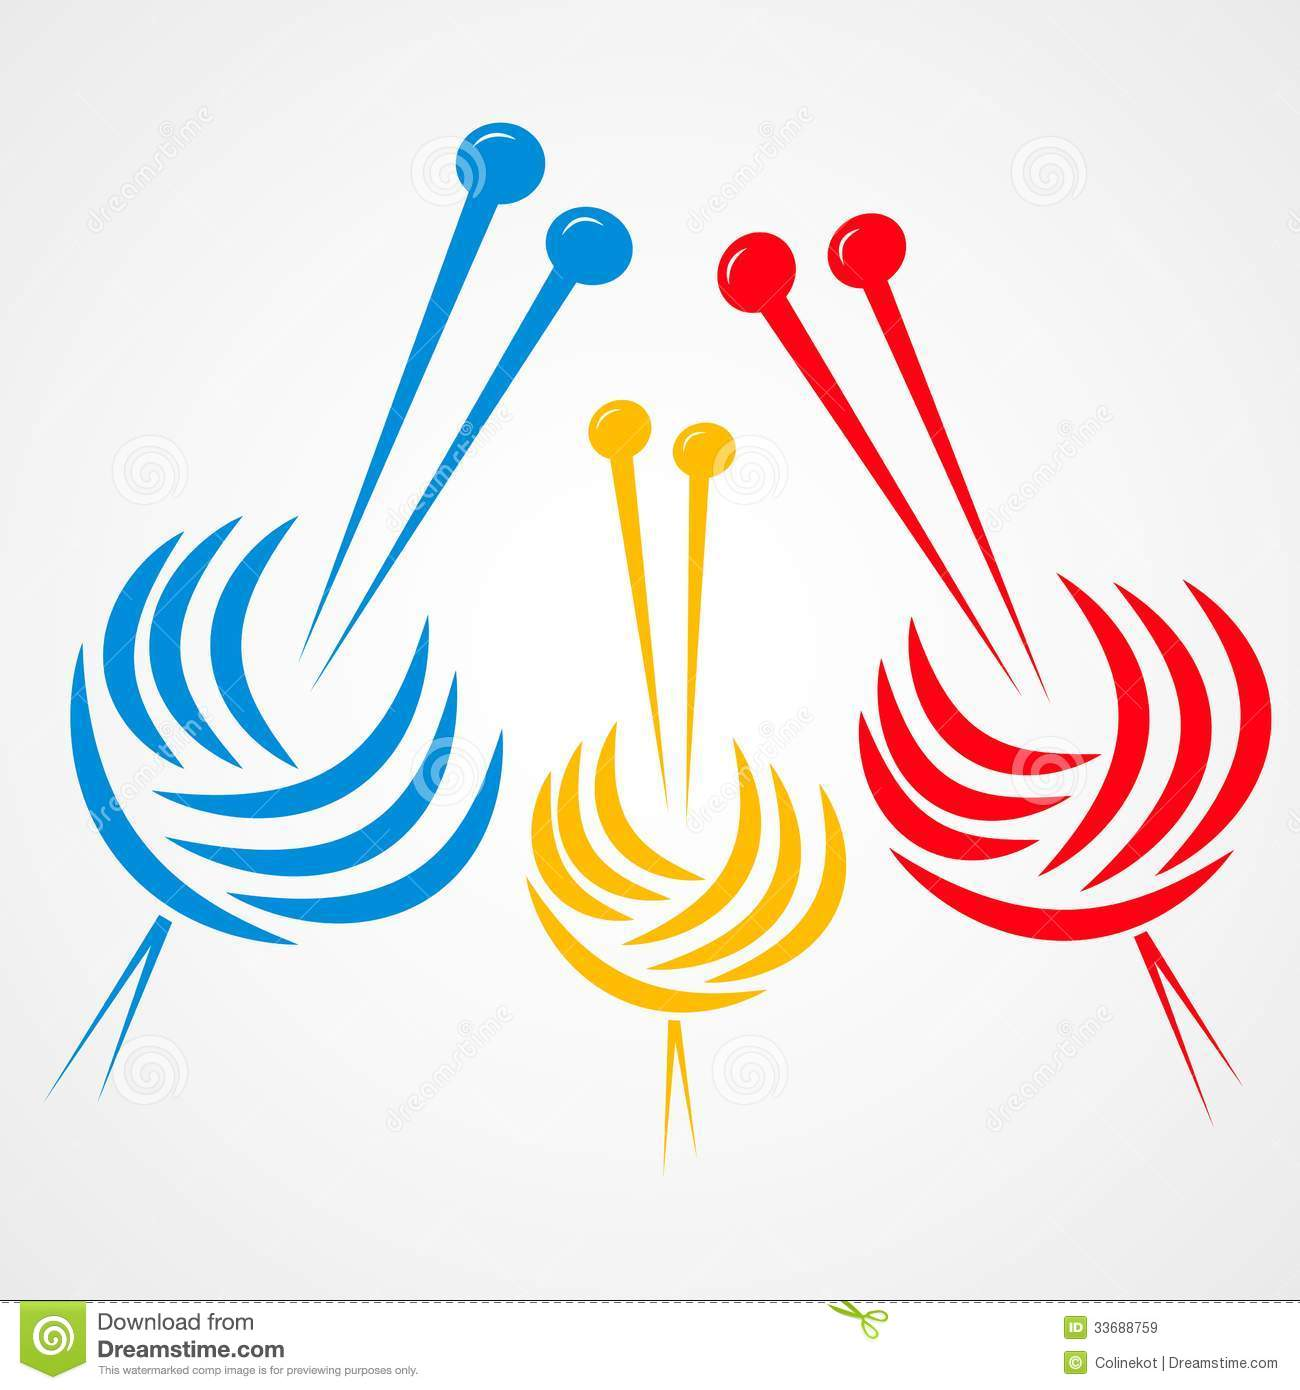 Knitting Clip Art Borders : Knitting needles royalty free stock images image